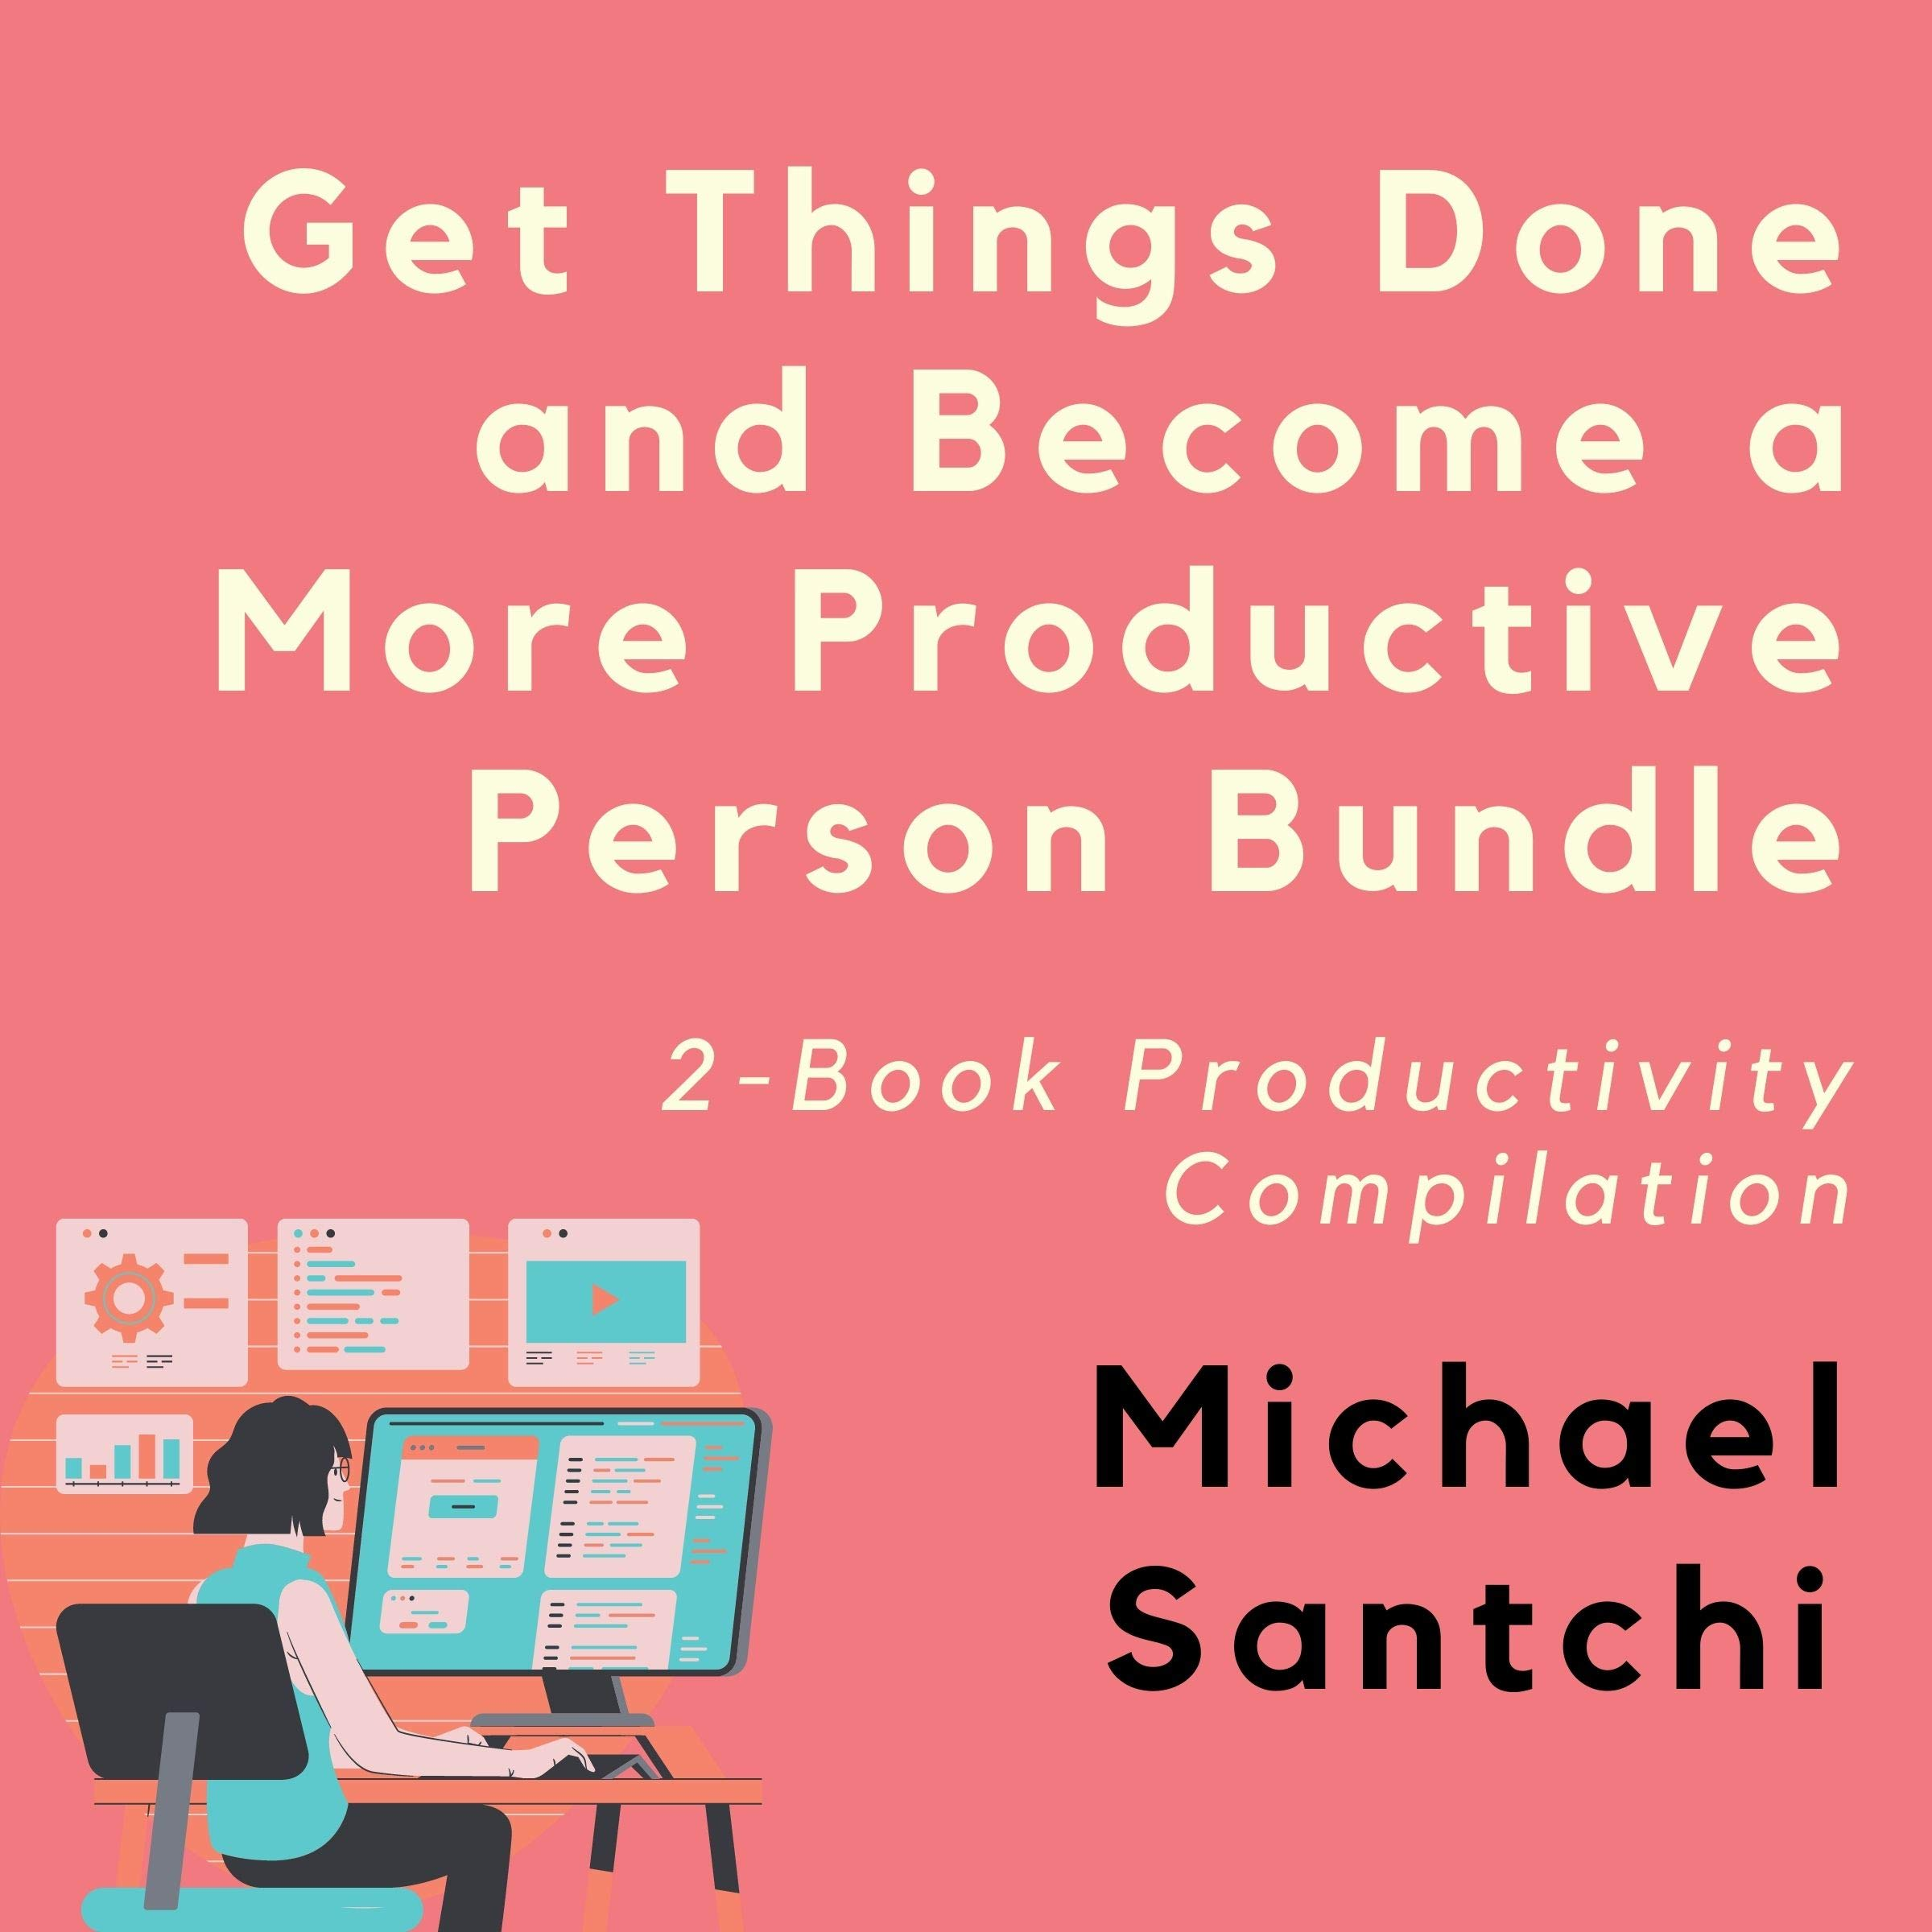 Get Things Done and Become a More Productive Person Bundle: 2-Book Productivity Compilation